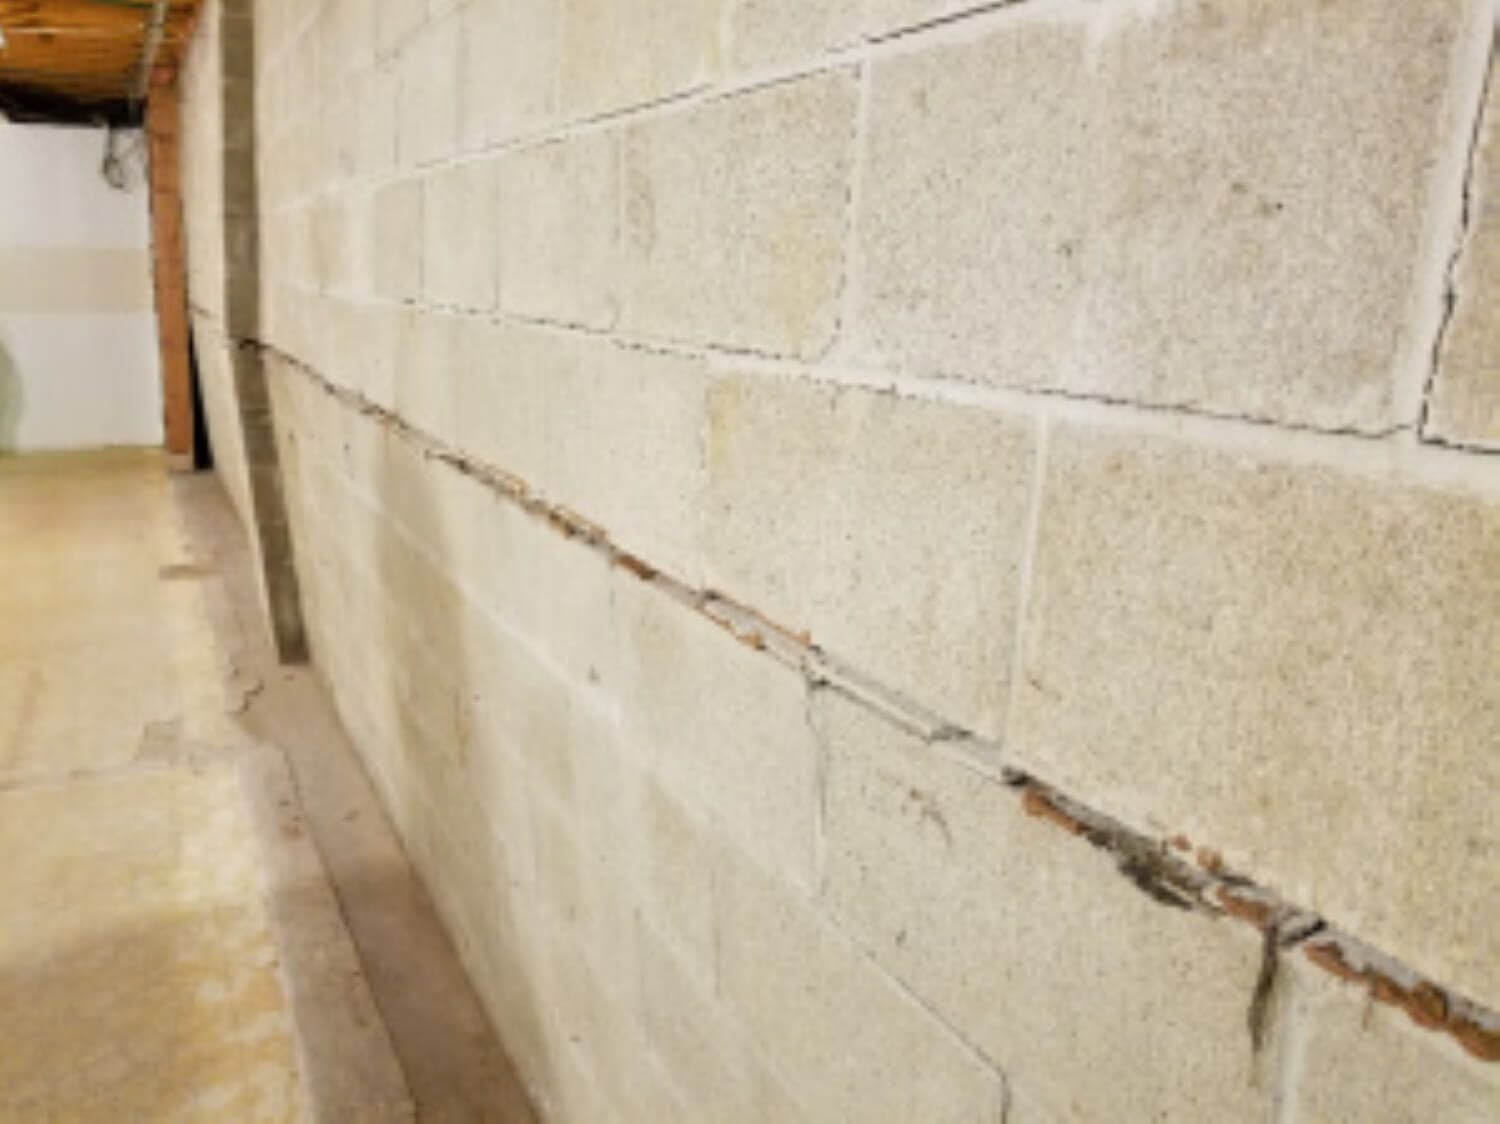 crack in block concrete wall, wall bowing inward